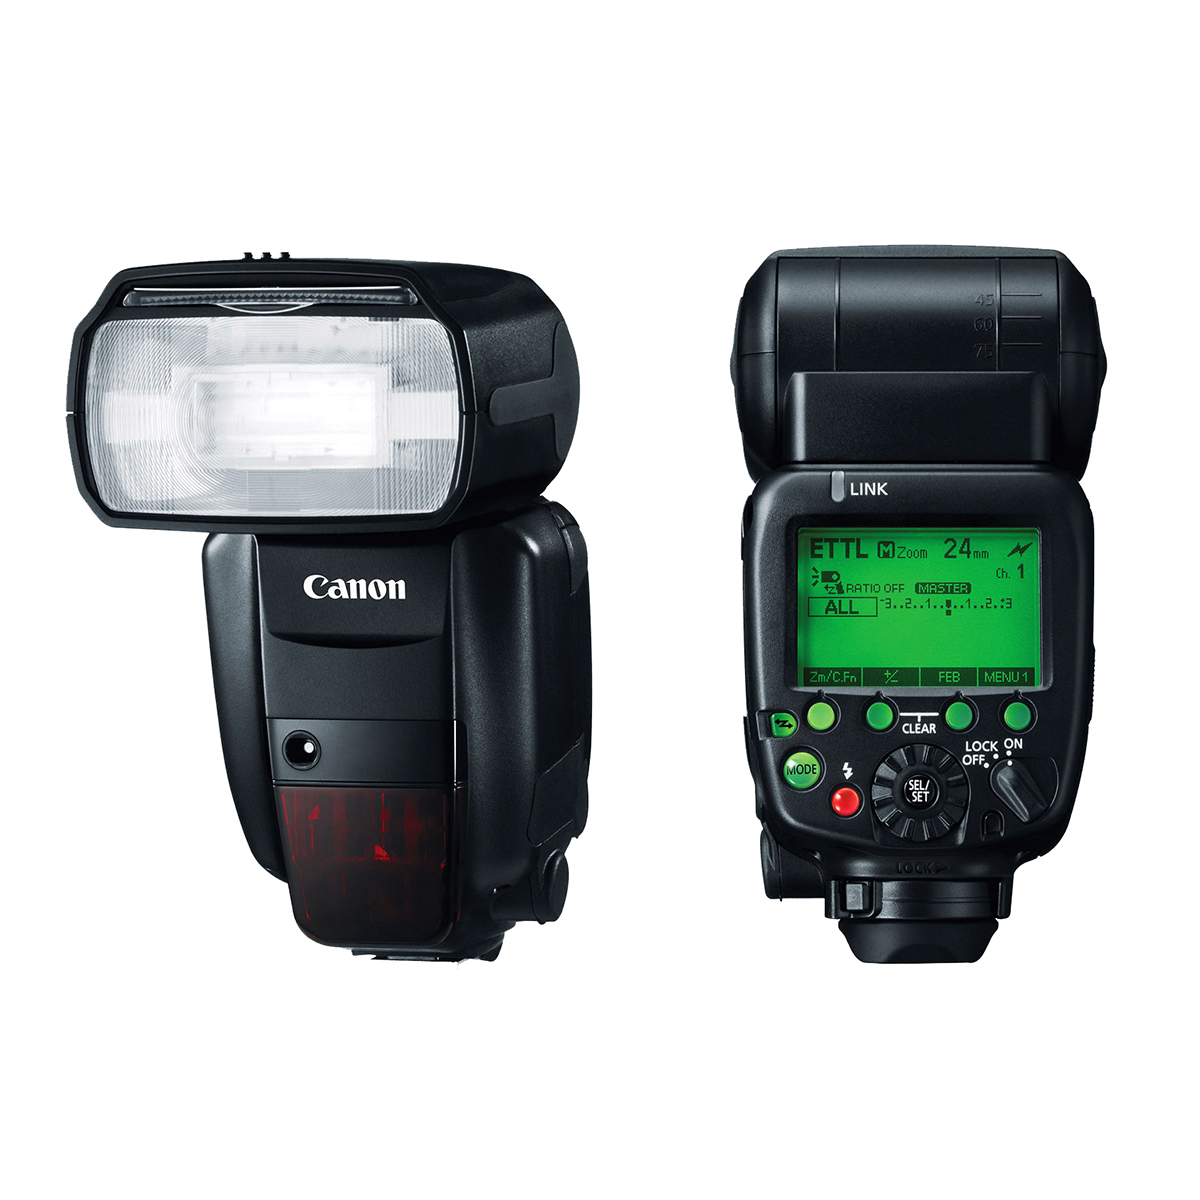 Immagine Canon Flash Speedlite 600 EX-RT